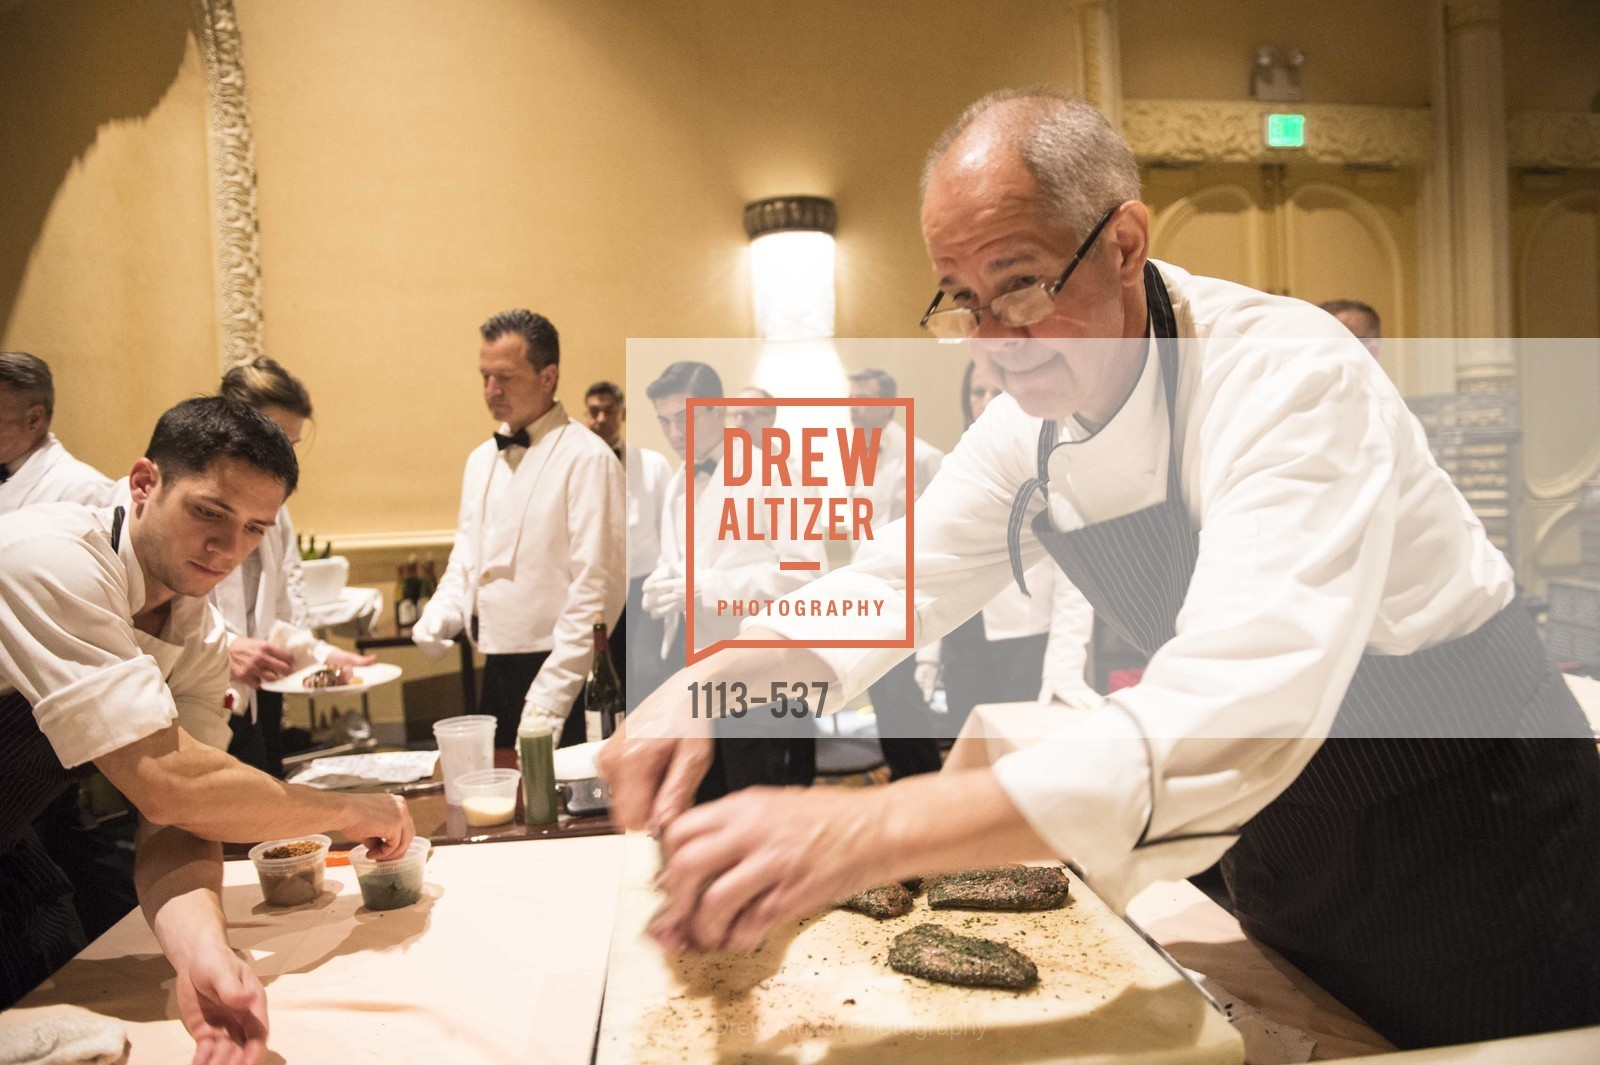 Gary Danko, TOP OF THE MARK'S 75TH Anniversary Party, US, November 7th, 2014,Drew Altizer, Drew Altizer Photography, full-service agency, private events, San Francisco photographer, photographer california